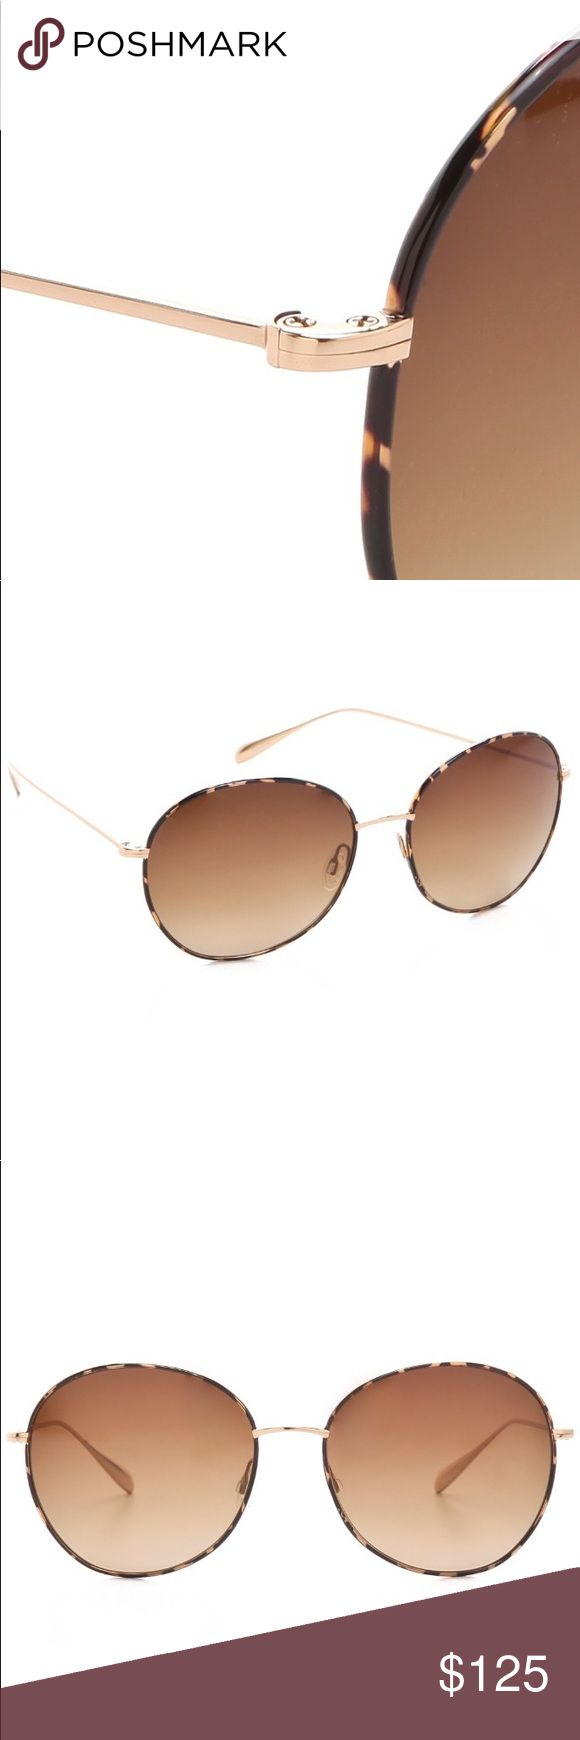 """Oliver Peoples Blondelle Round Sunglasses G-Havana New Oliver Peoples Sunglasses from Off Saks 5th. Sunglasses were on display. Made for Joan Blondell, actress. These sunglasses feature a tortoiseshell wire frame and polarized, gradient lenses. Round shape, adjustable nose pads.  Frame  6"""" wide (measured from temple edges) and 2.25"""" high. Titanium. Left temple marked: TITANIUM OV1102ST 514/9P Blondell 60 17 135 2P Right temple marked Oliver Peoples Polarized Made in Japan Made in Japan…"""